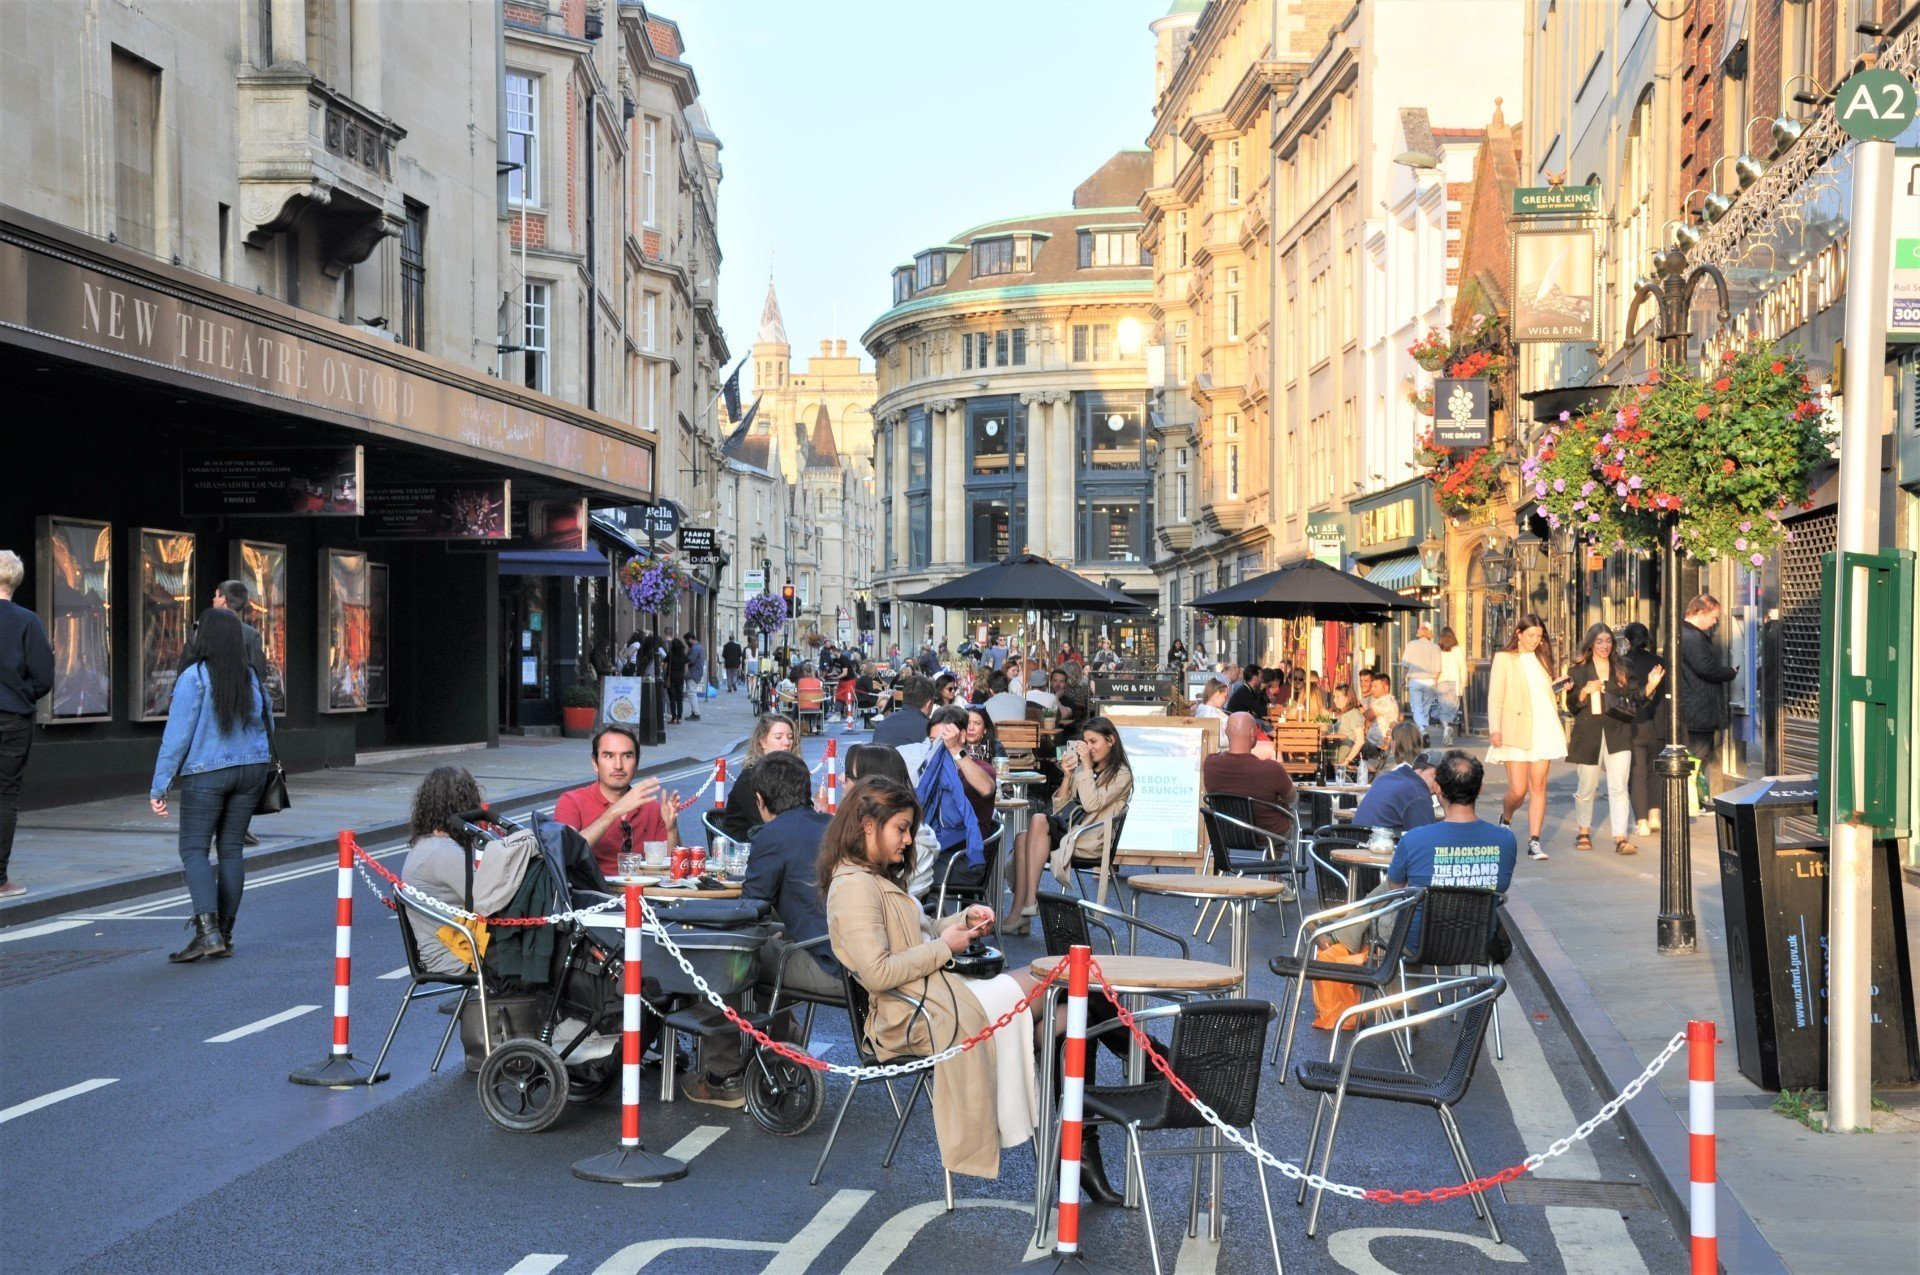 Oxford's George Street part-pedestrianised to support local restaurants and cafes - Image 04